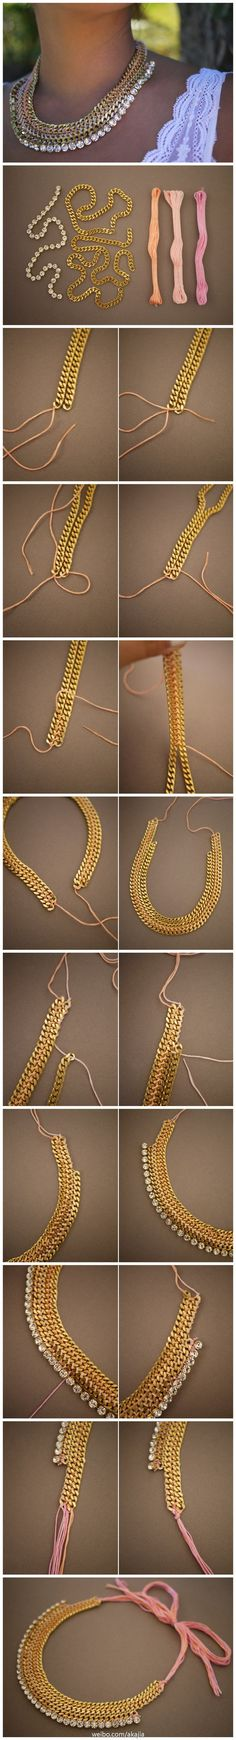 DIY chain necklace                                                                                                                                                                                 More